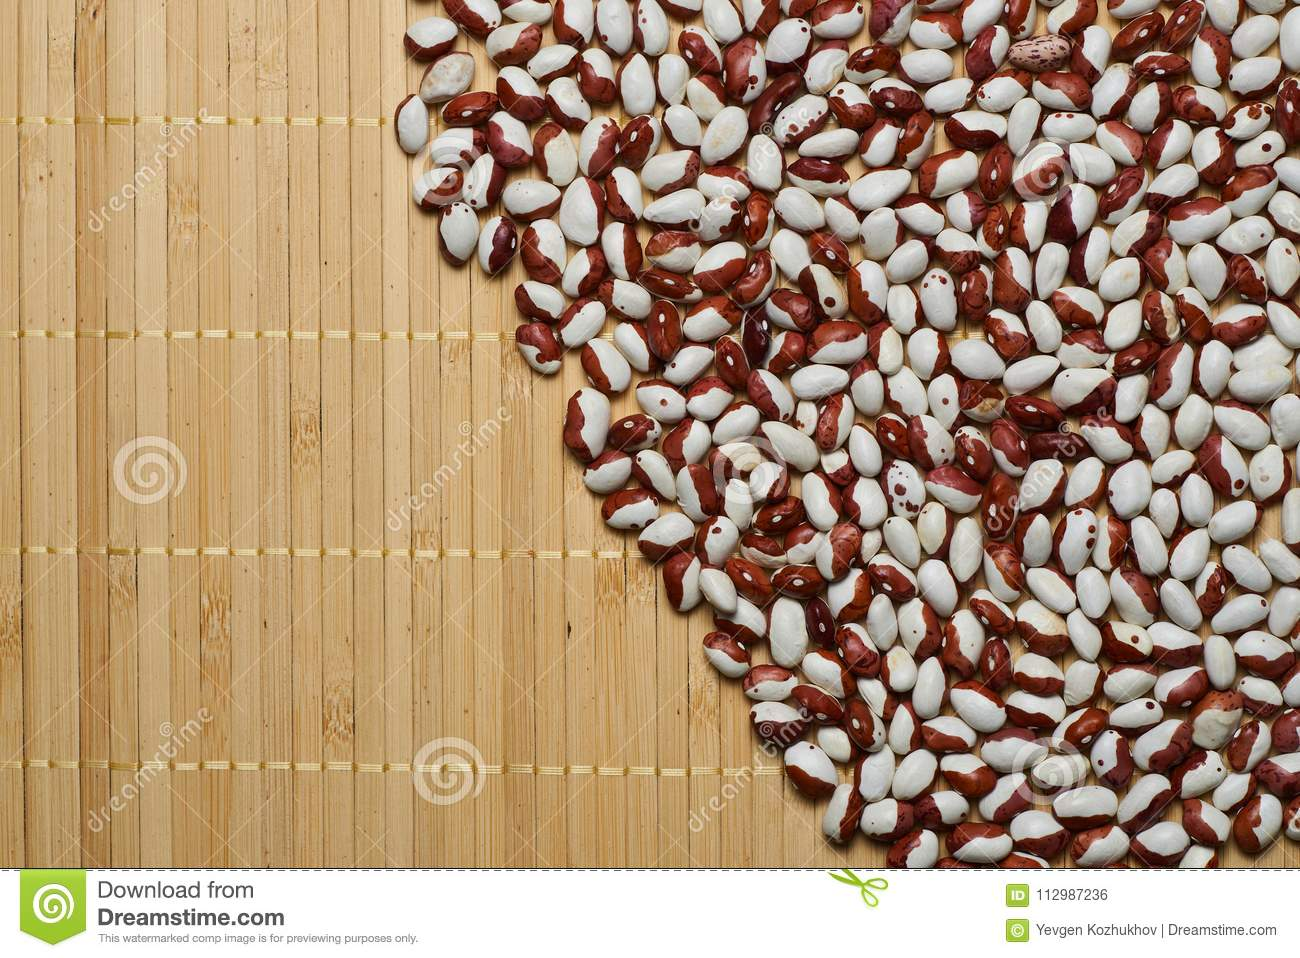 White red beans background